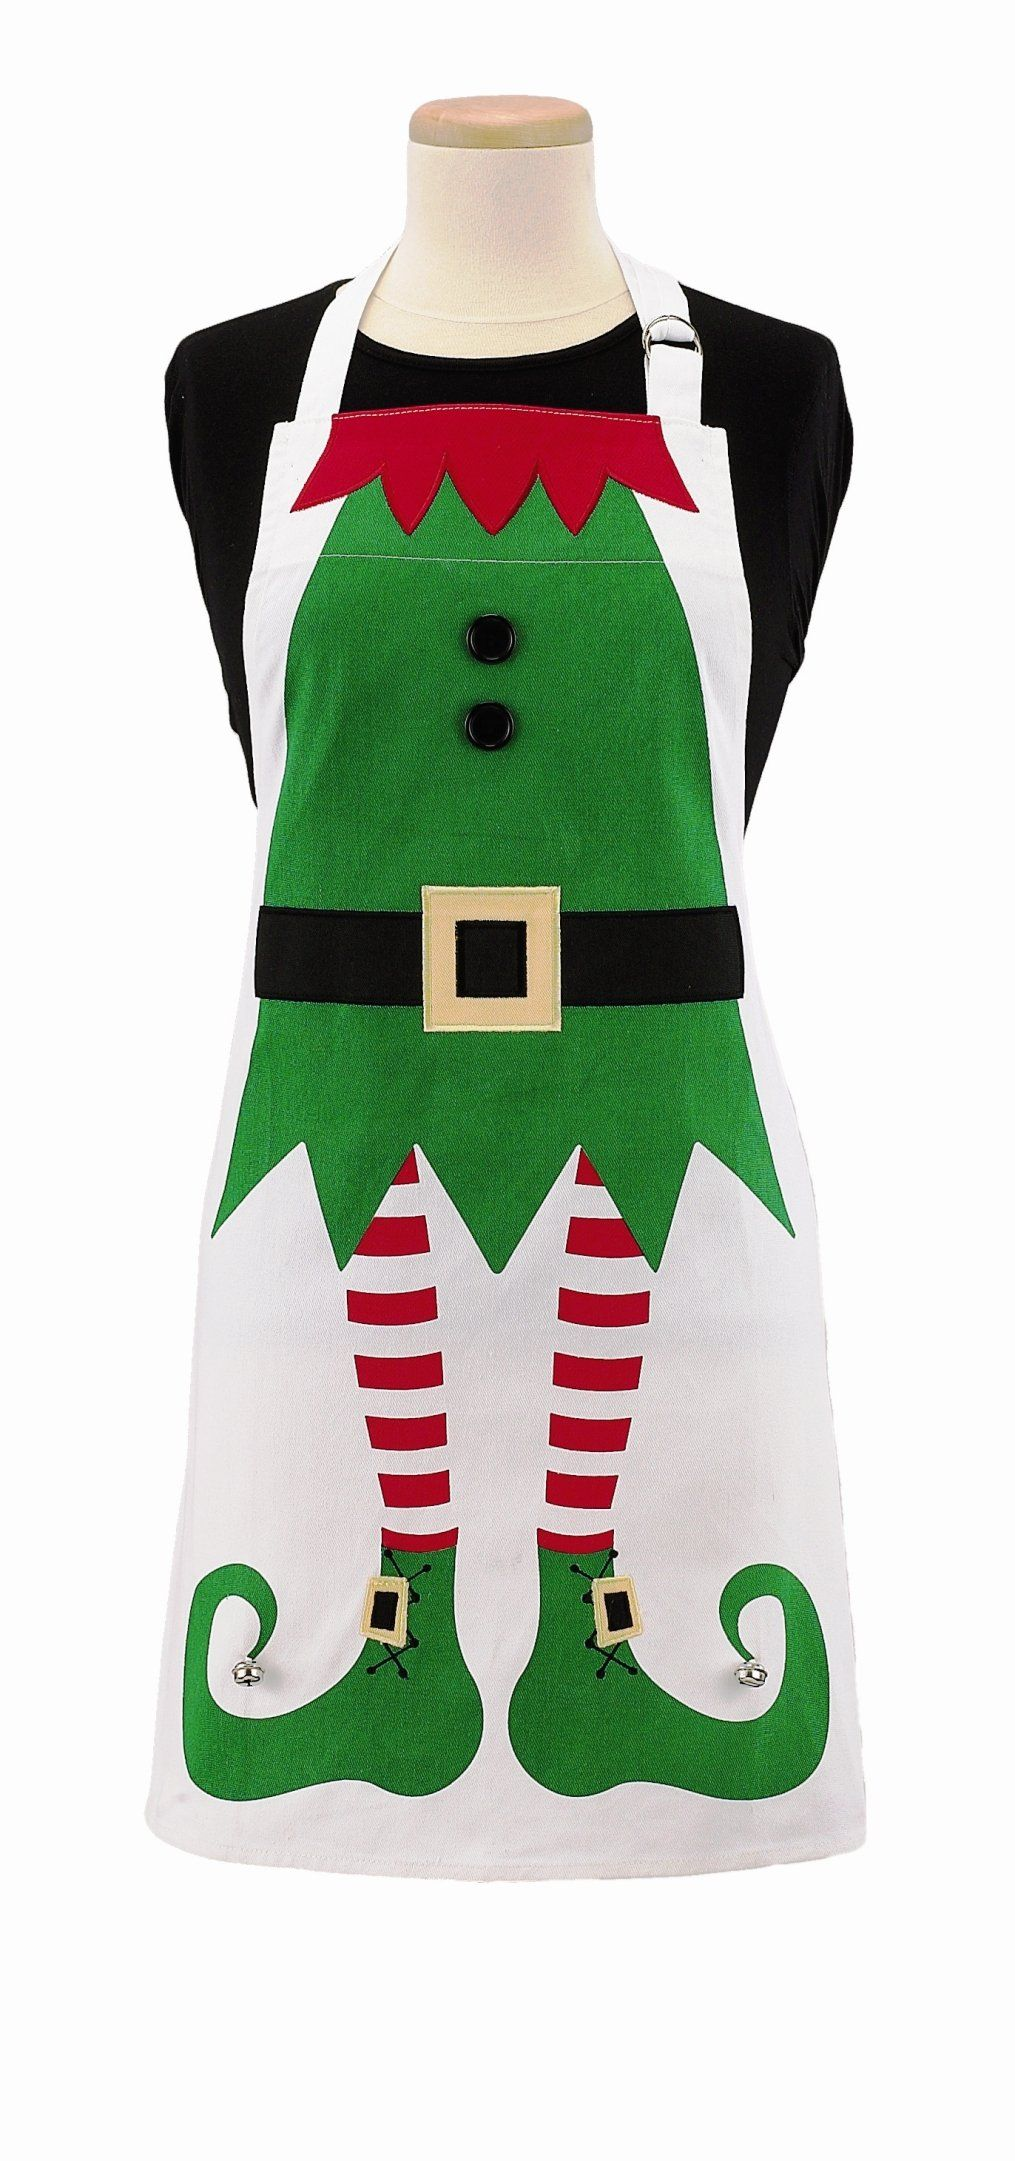 Amazoncom Merry Christmas Aprons For Holiday Kitchen